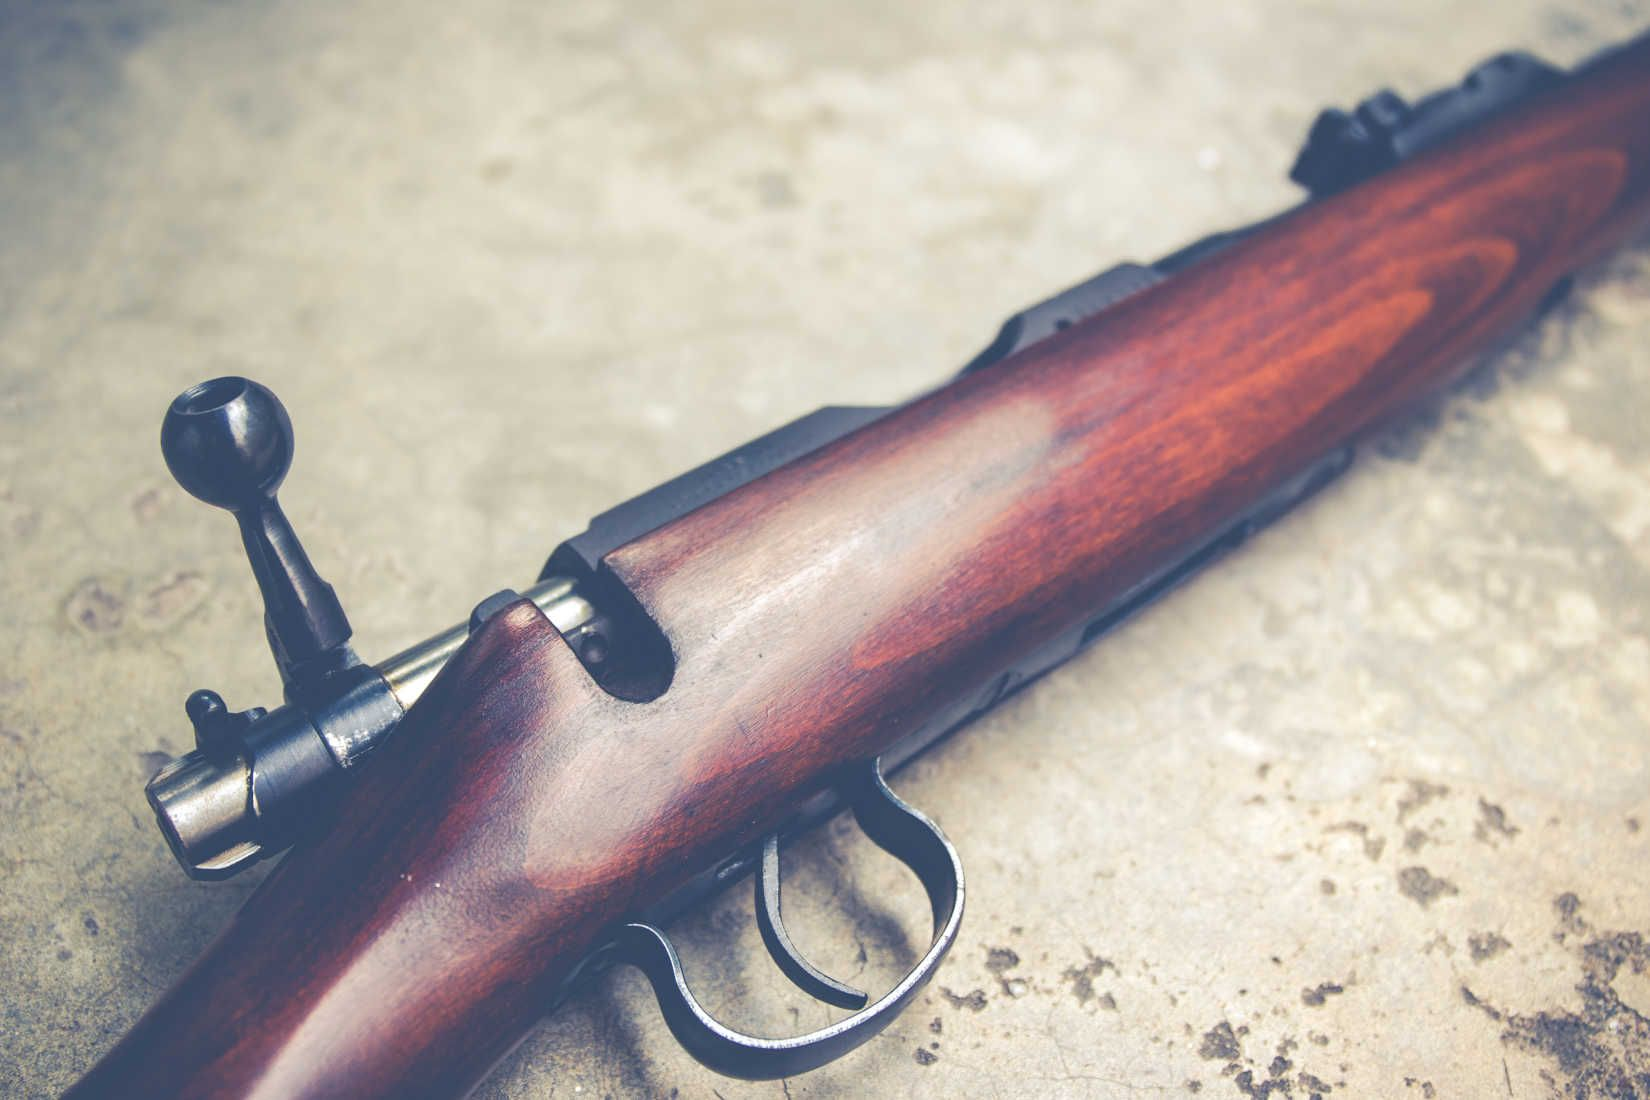 Half-a-Century of Mental Adjustments from My First Rifle